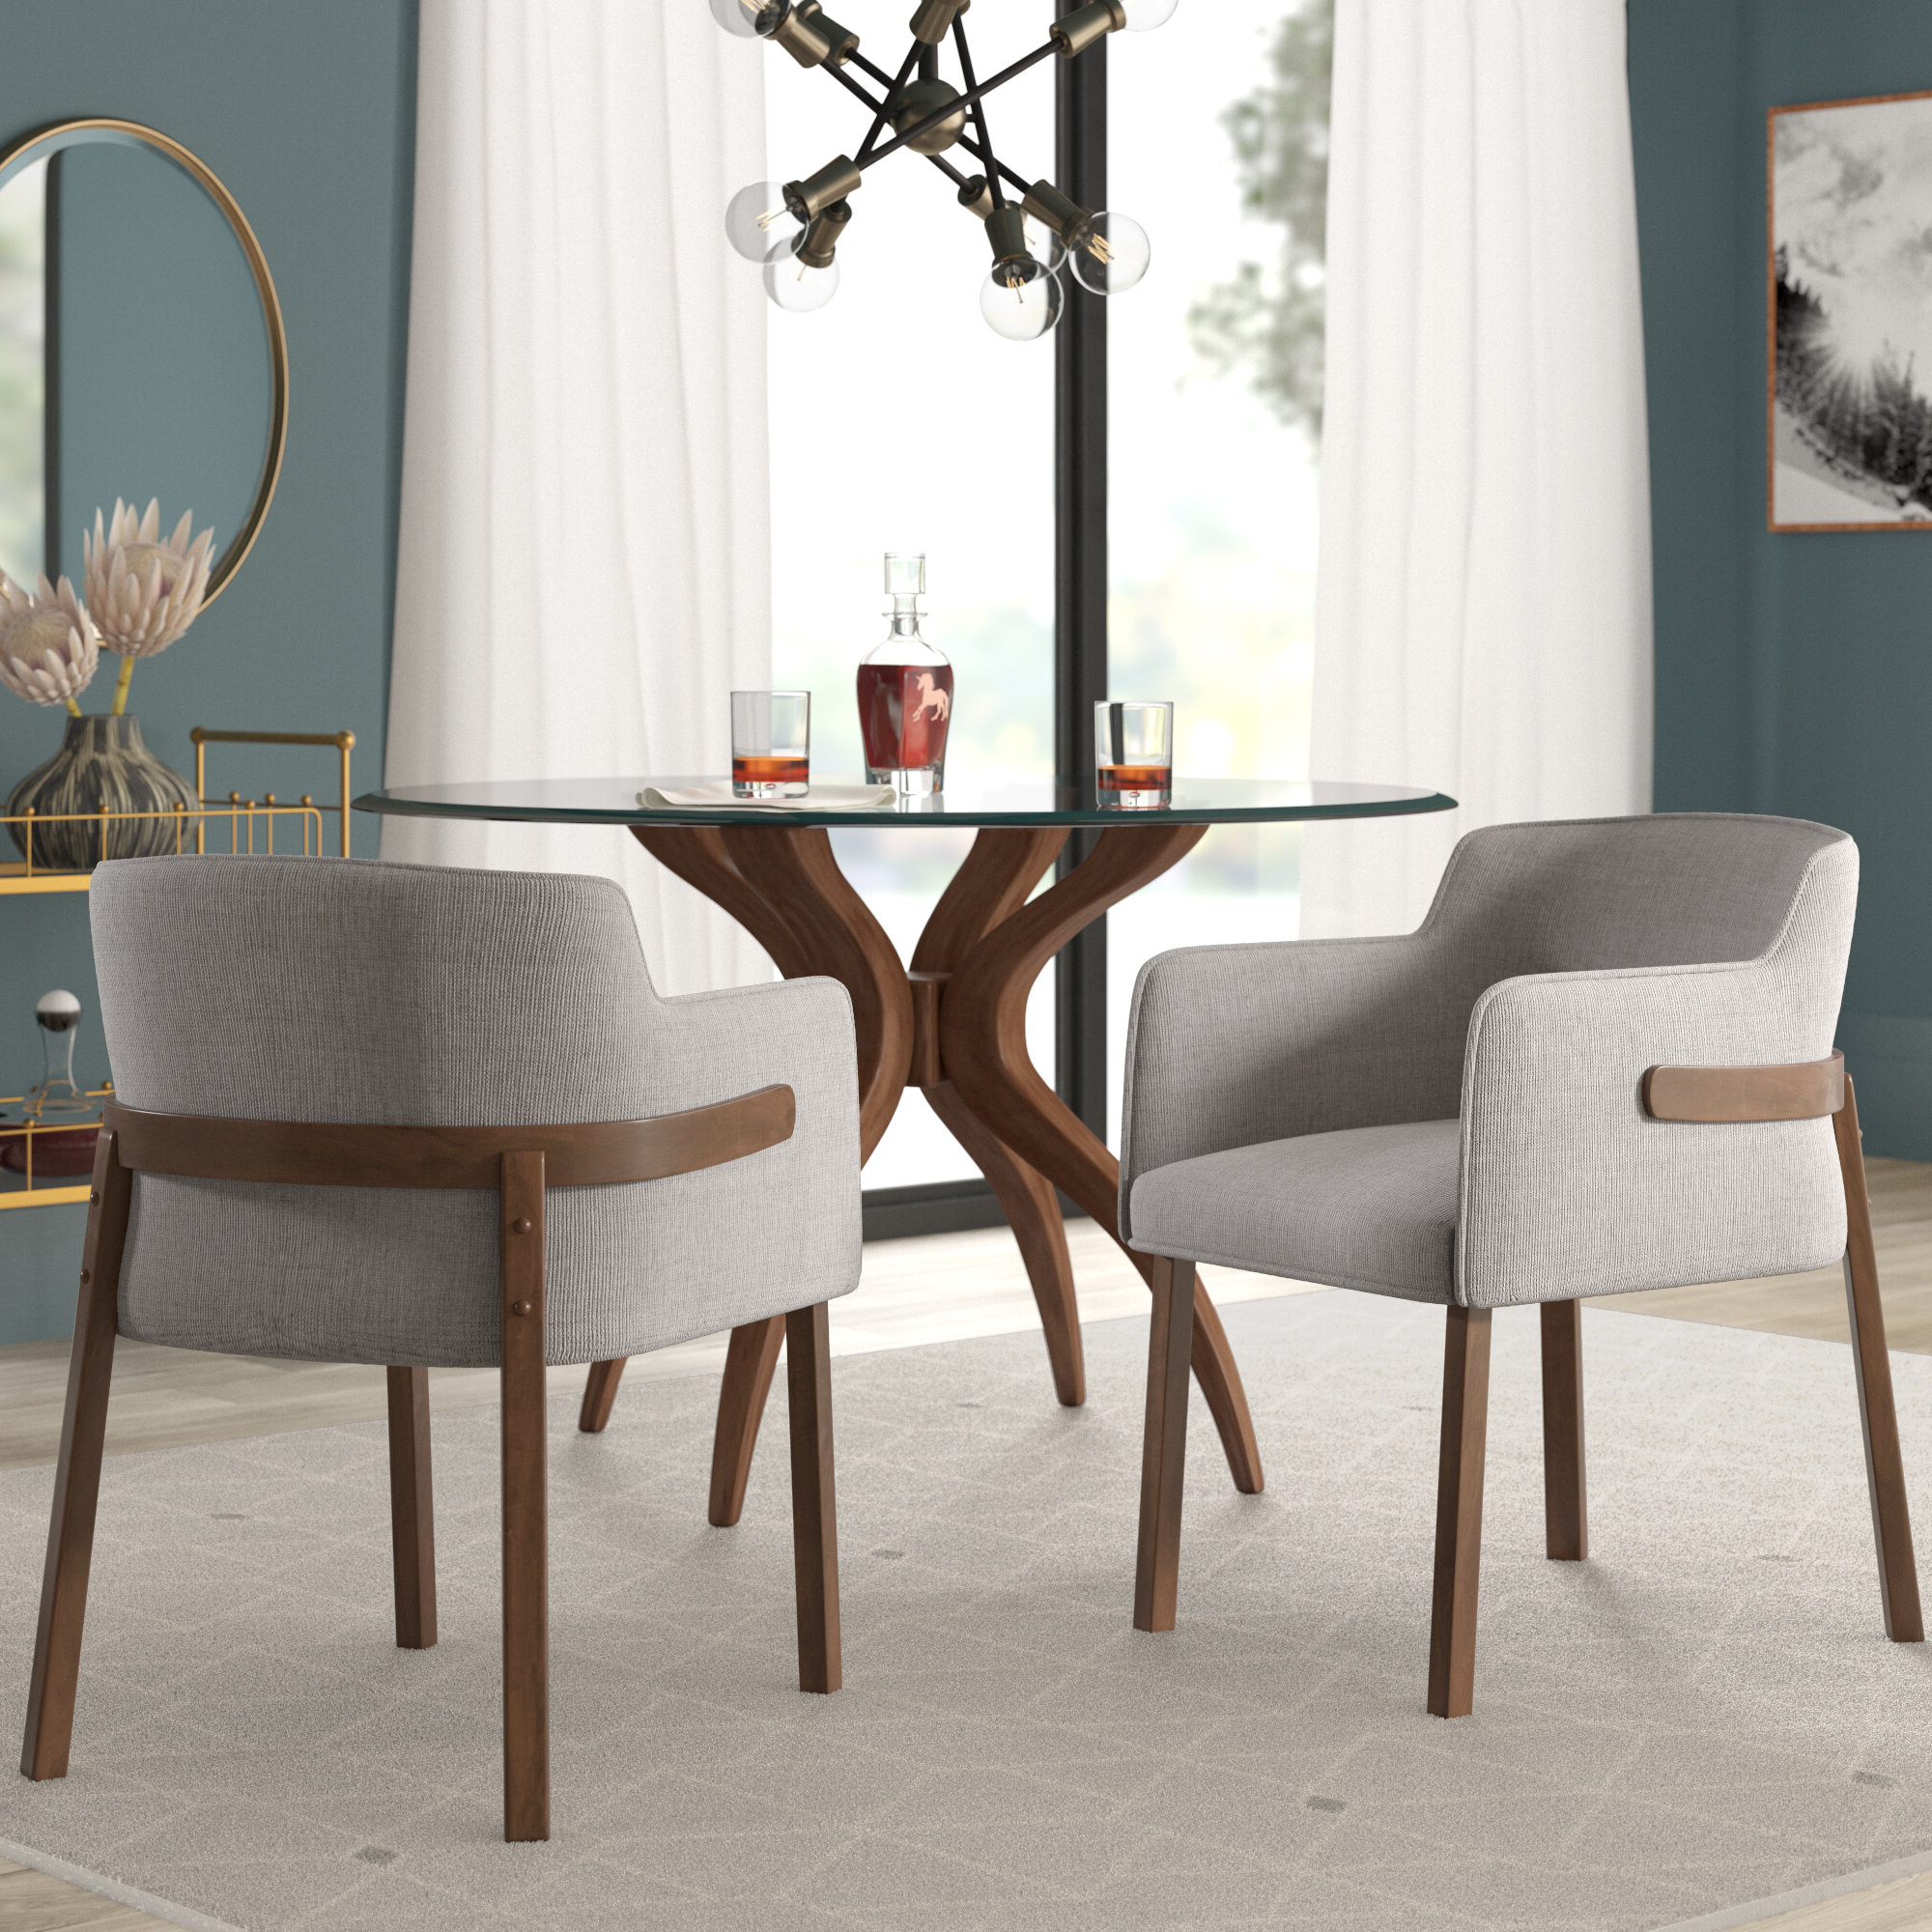 Mukai 5 Piece Dining Sets Within 2020 Mercury Row Mukai Upholstered Dining Chair & Reviews (View 10 of 25)